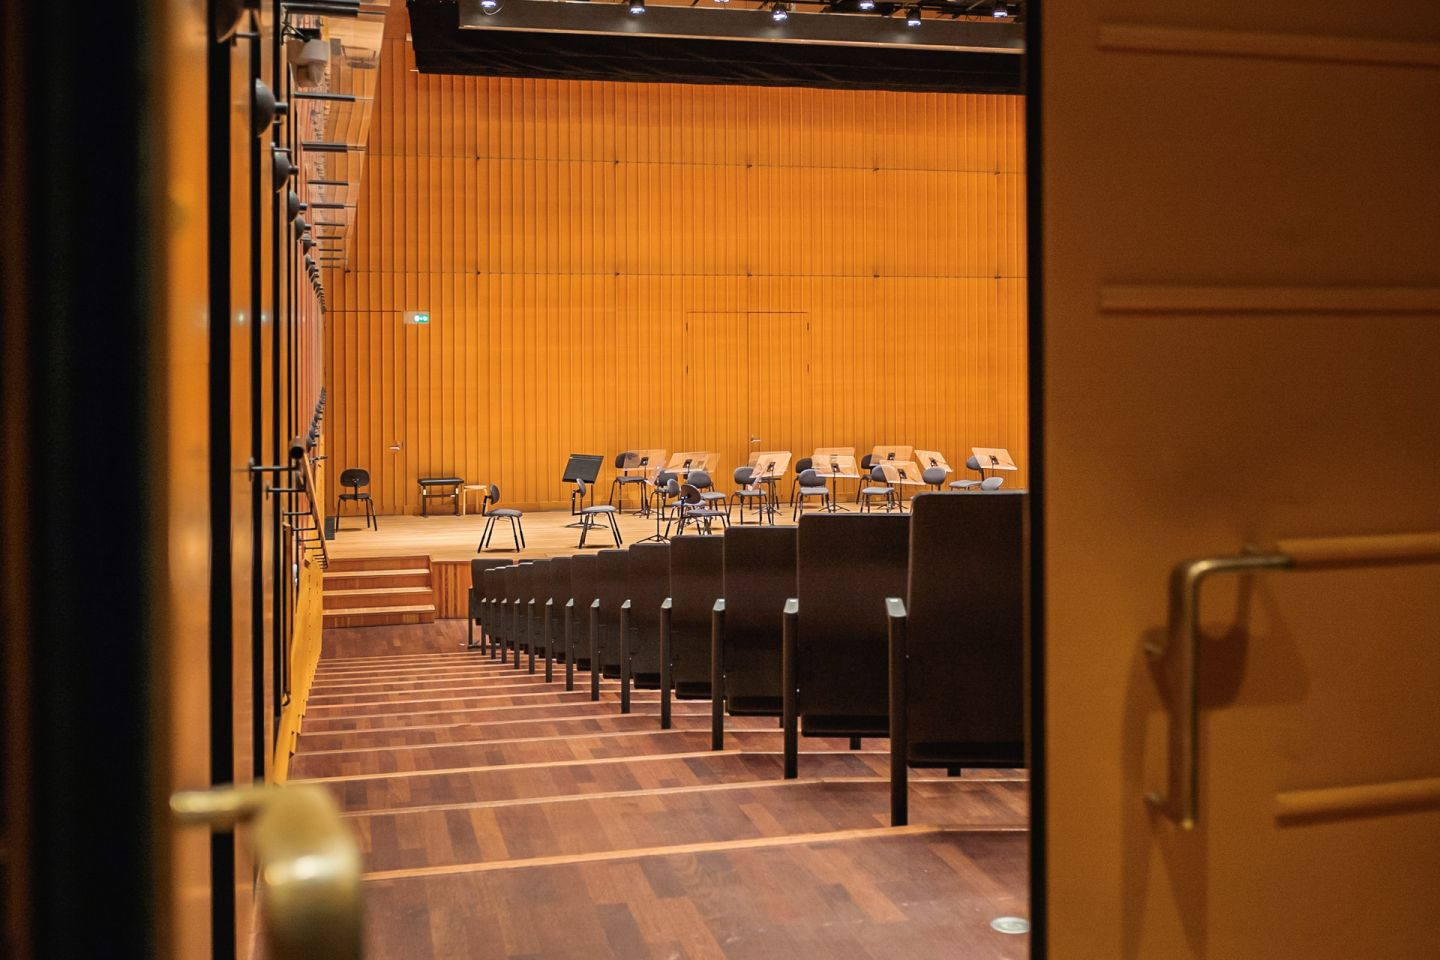 Lapland Chamber Orchestra concert hall stage.